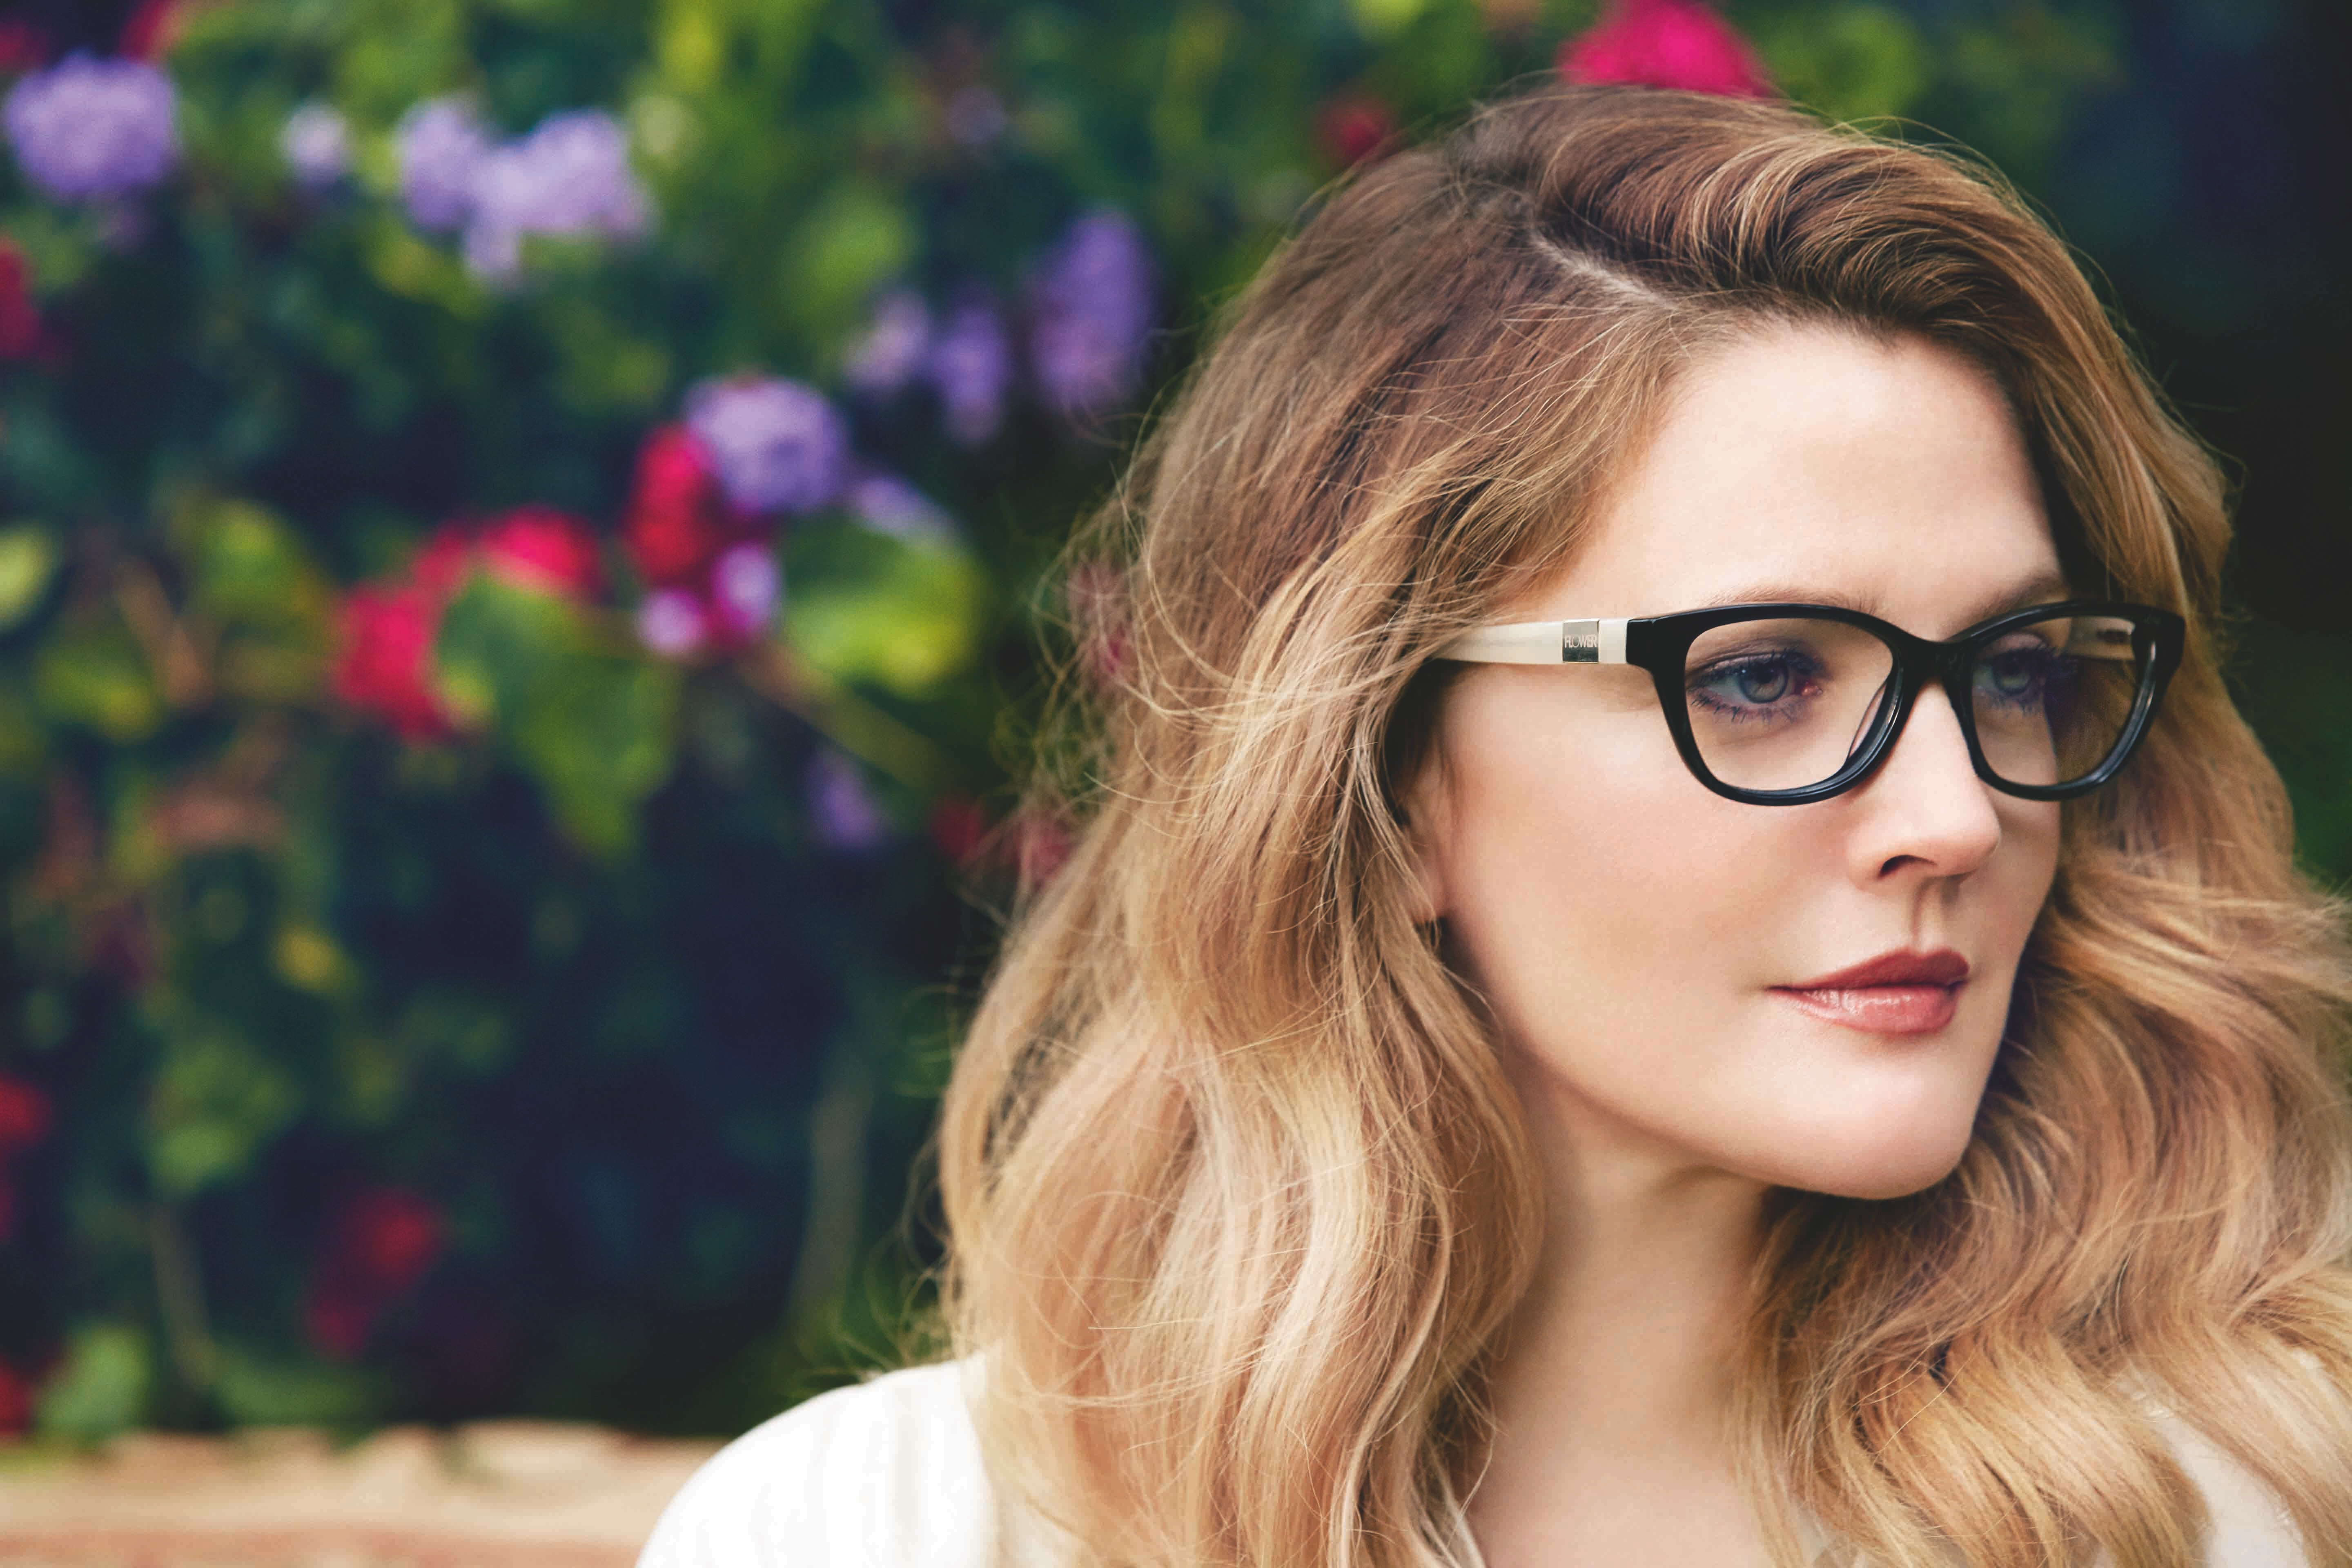 Drew Barrymore Launches Flower Eyewear Proving She Can Do It All